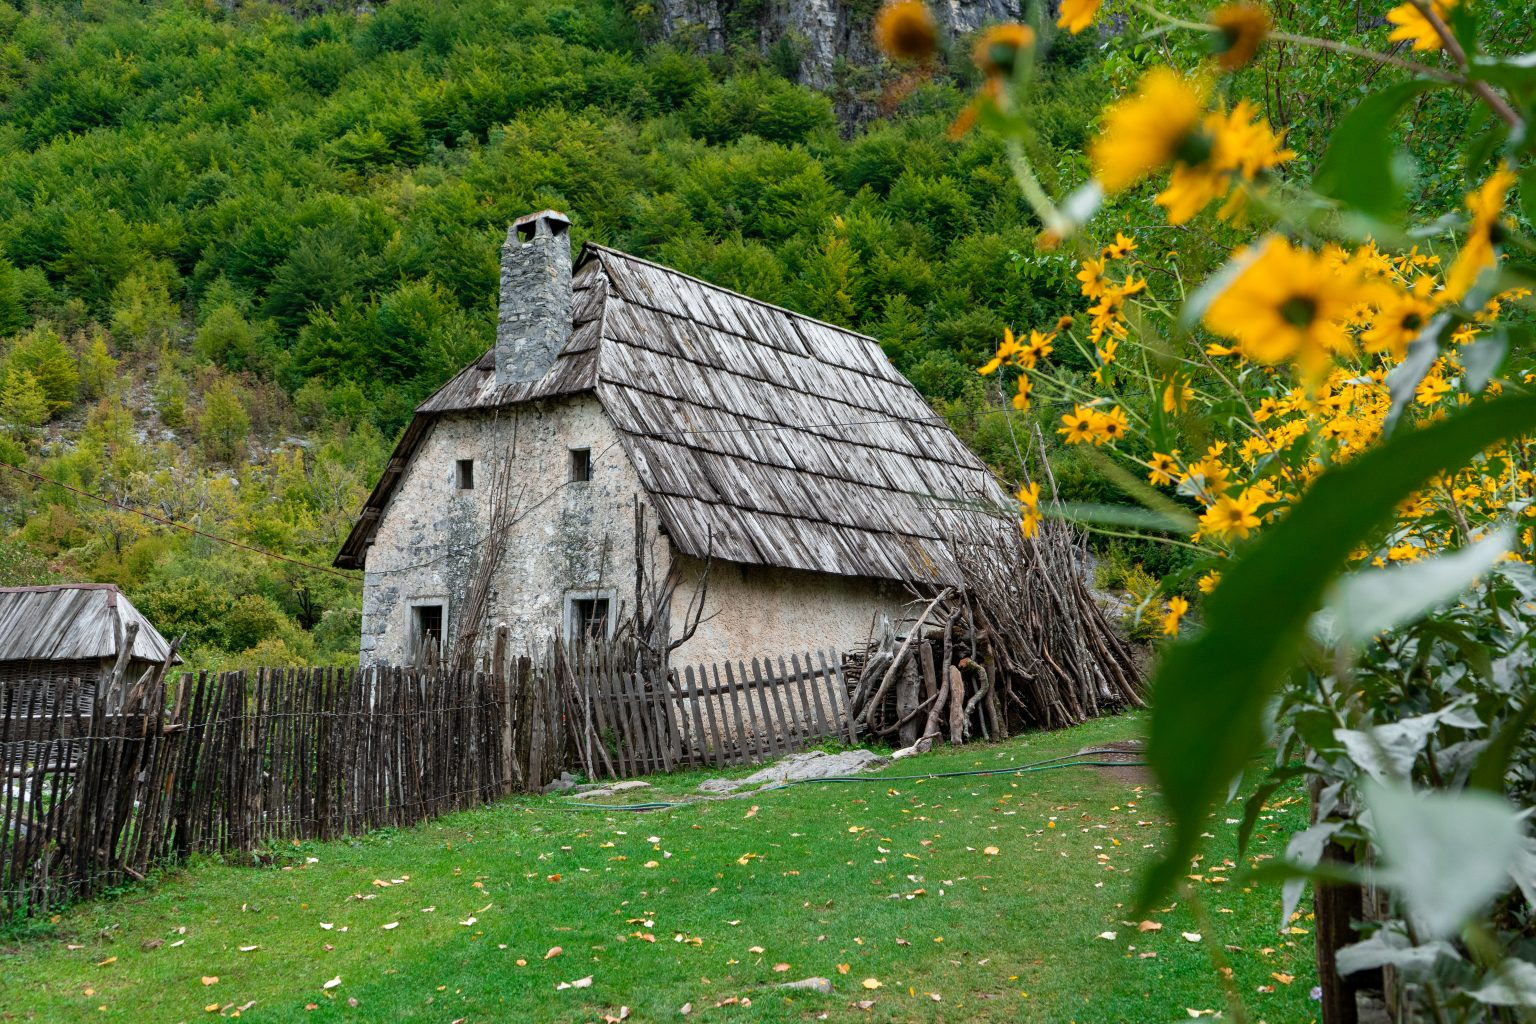 It's undoubtedly one of the most beautiful places to visit in Albania, and in the Balkans.